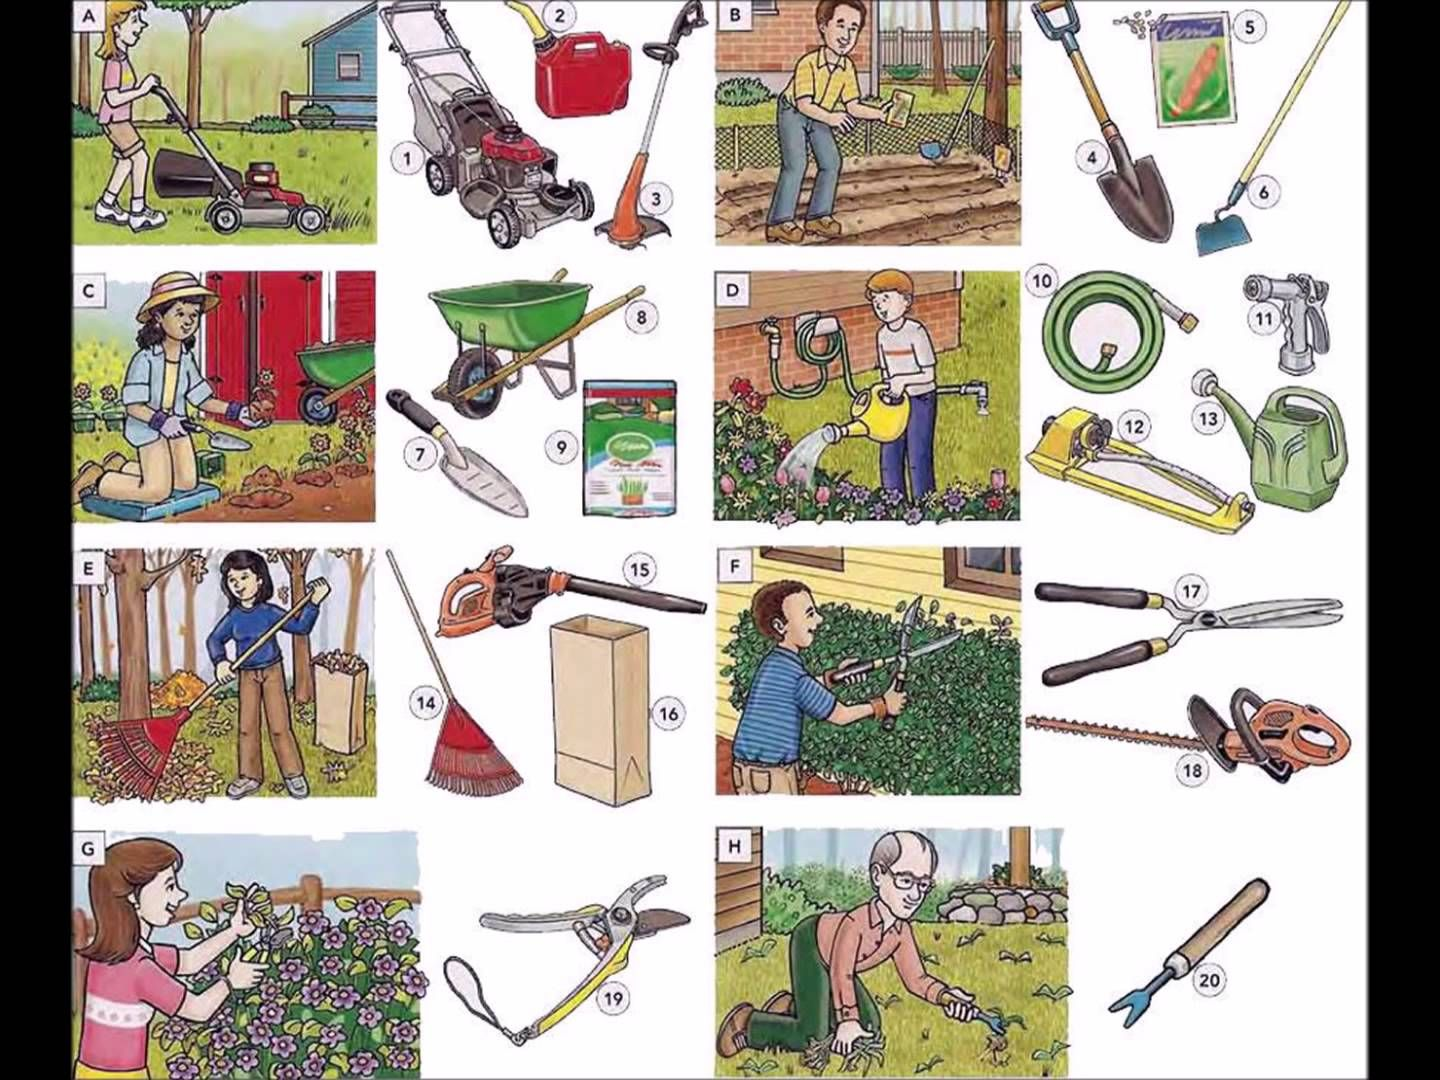 Garden tools garden actions and maintenance video english for Basic garden maintenance